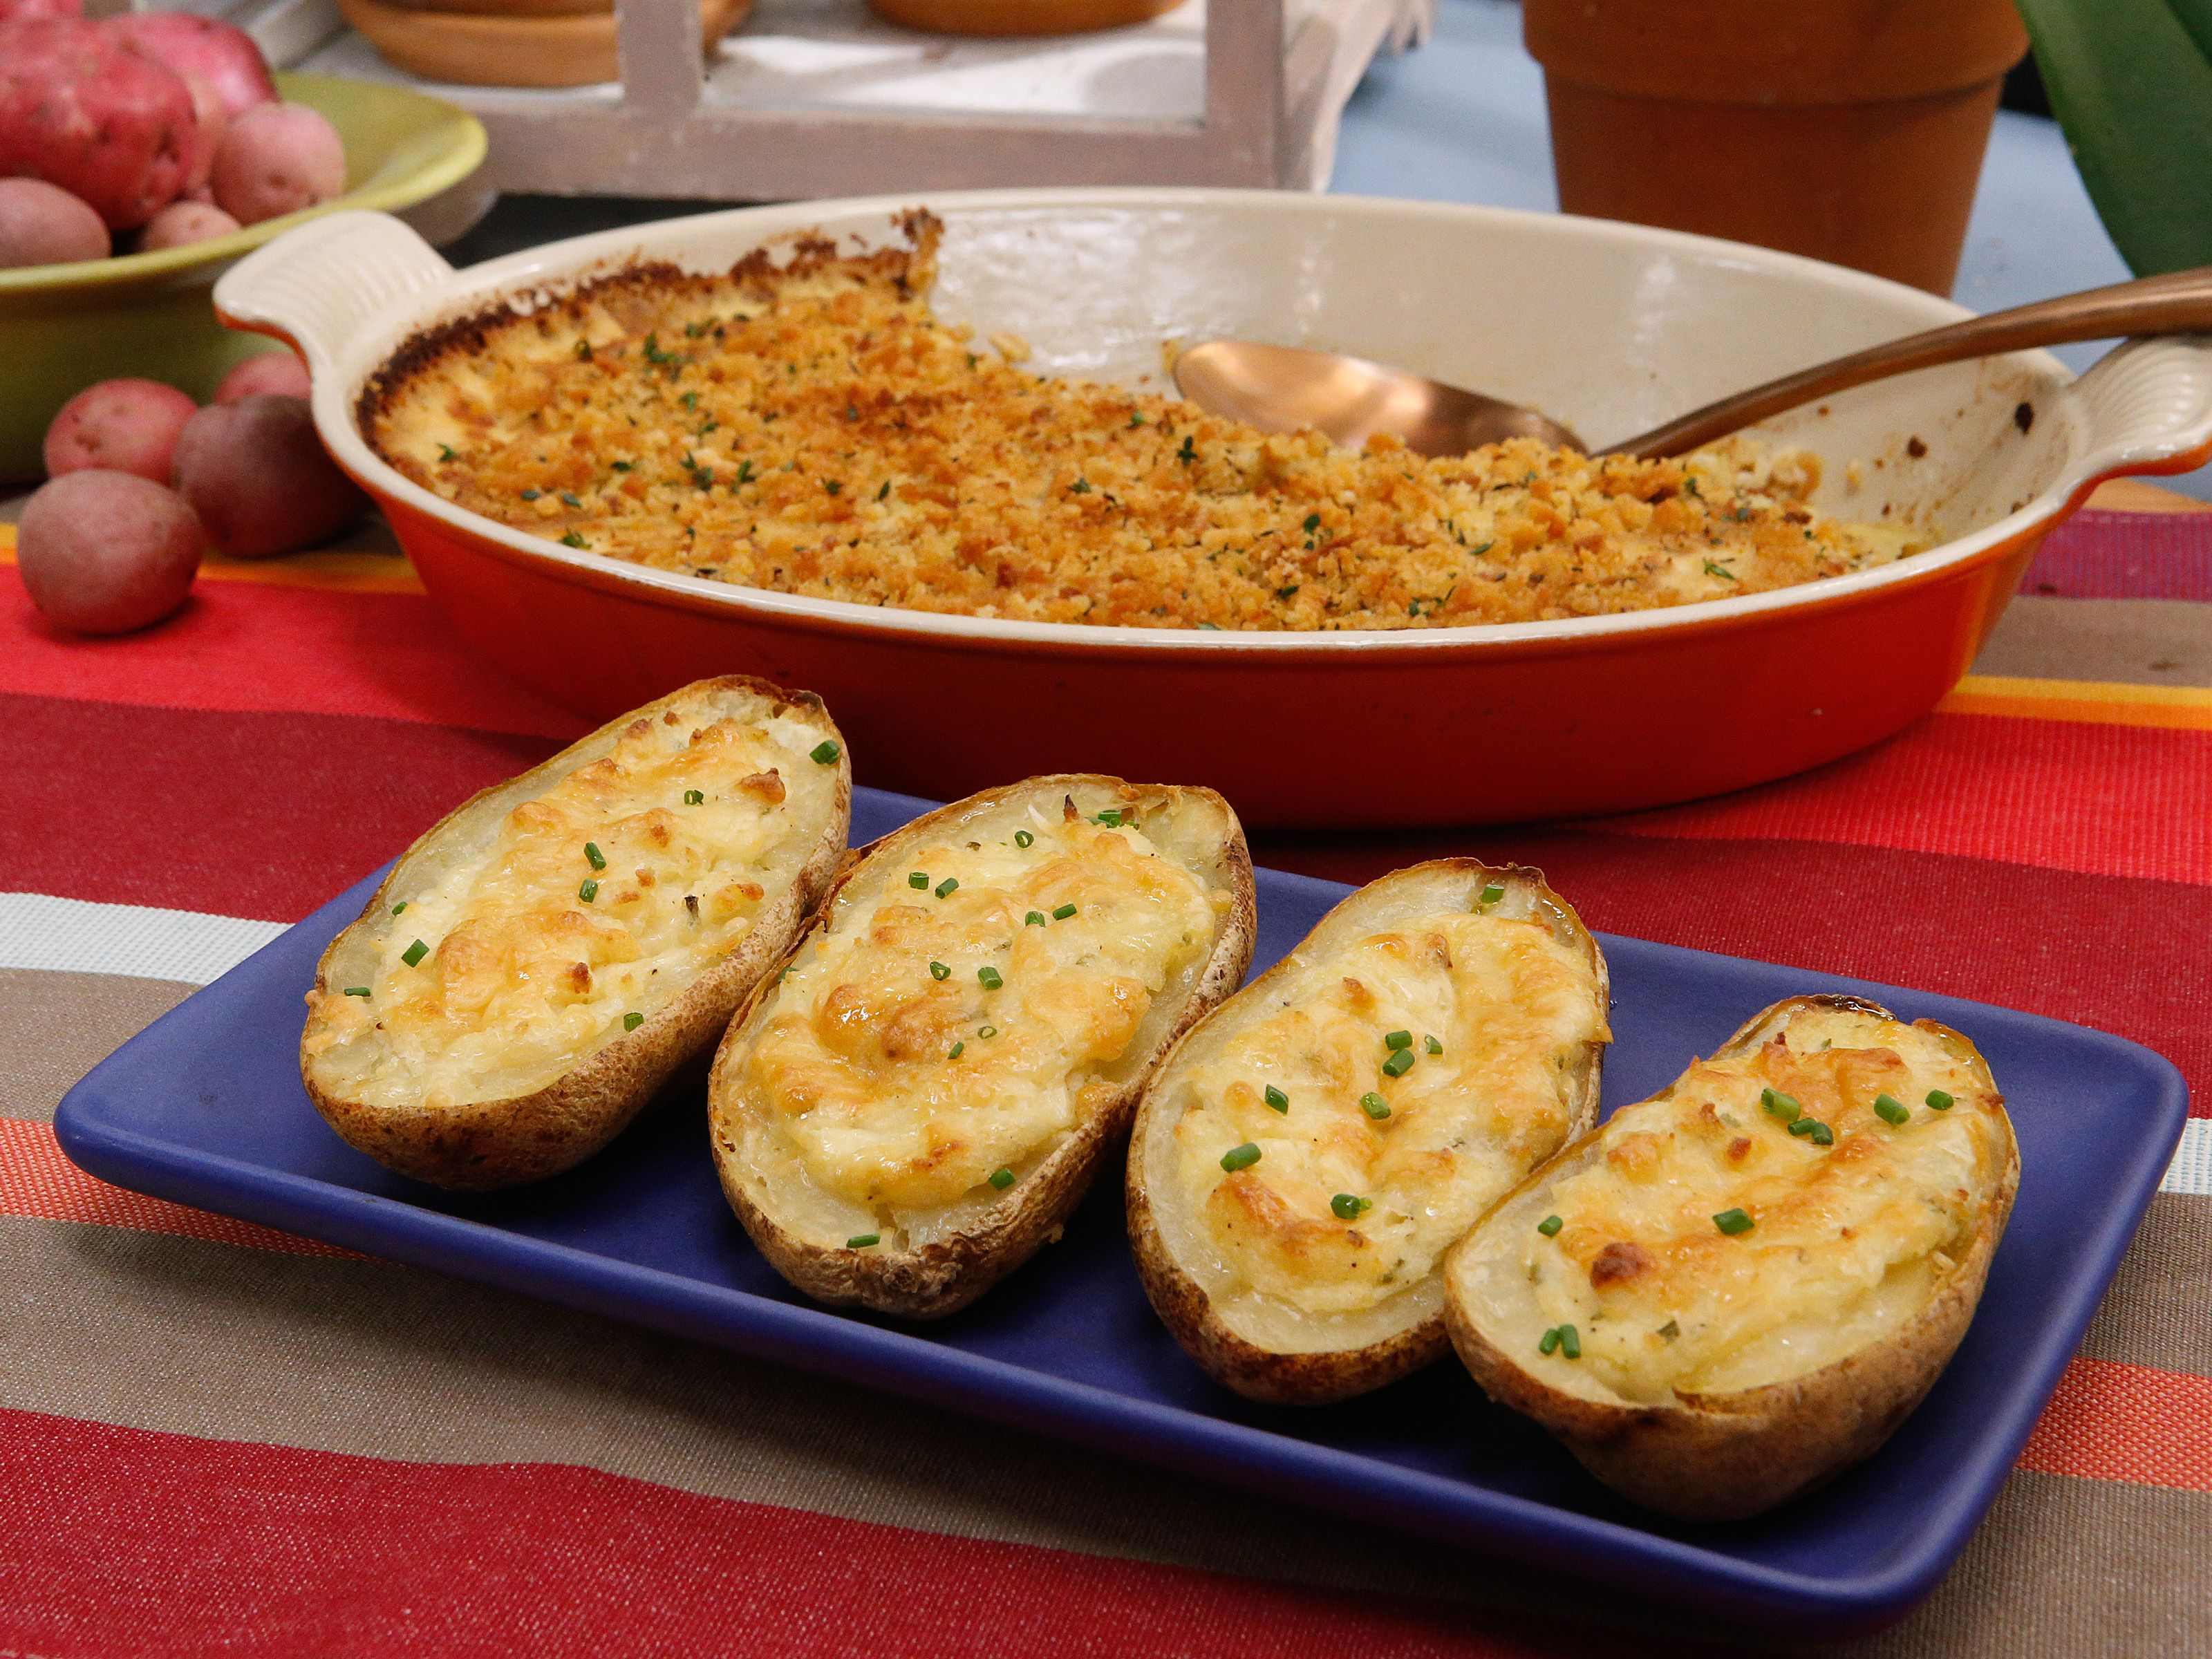 Cheesy twice baked potatoes recipe katie lee food and recipes forumfinder Image collections